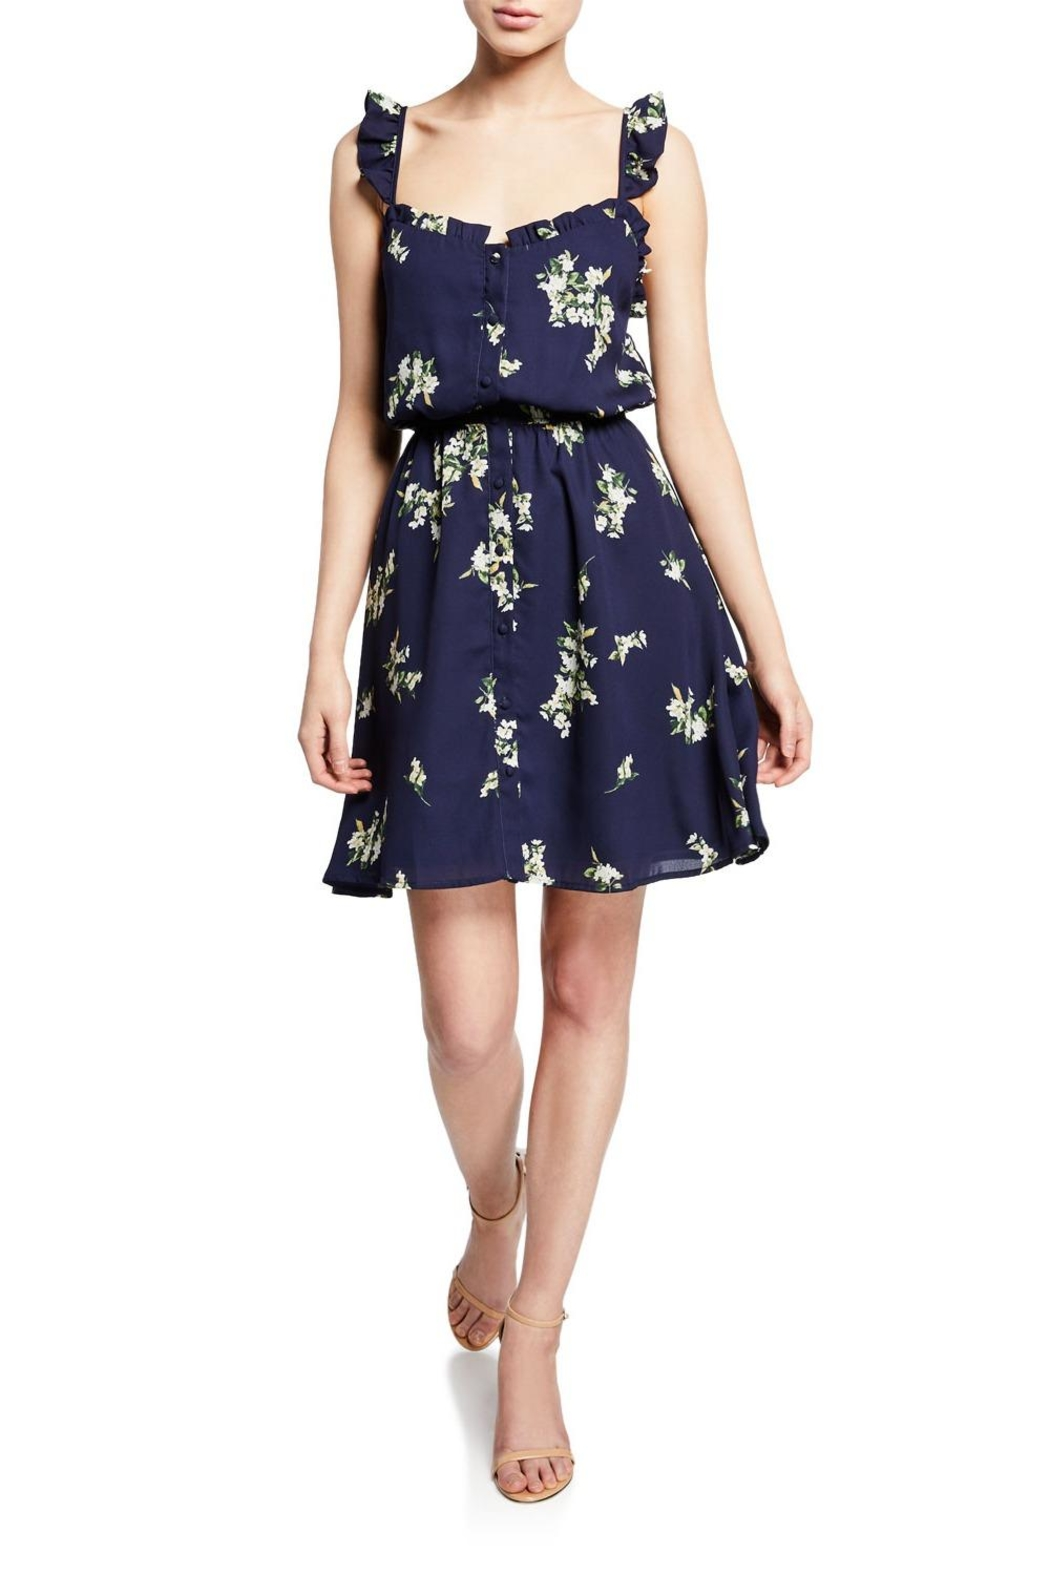 Cupcakes & Cashmere Lynette Floral Dress - Front Cropped Image